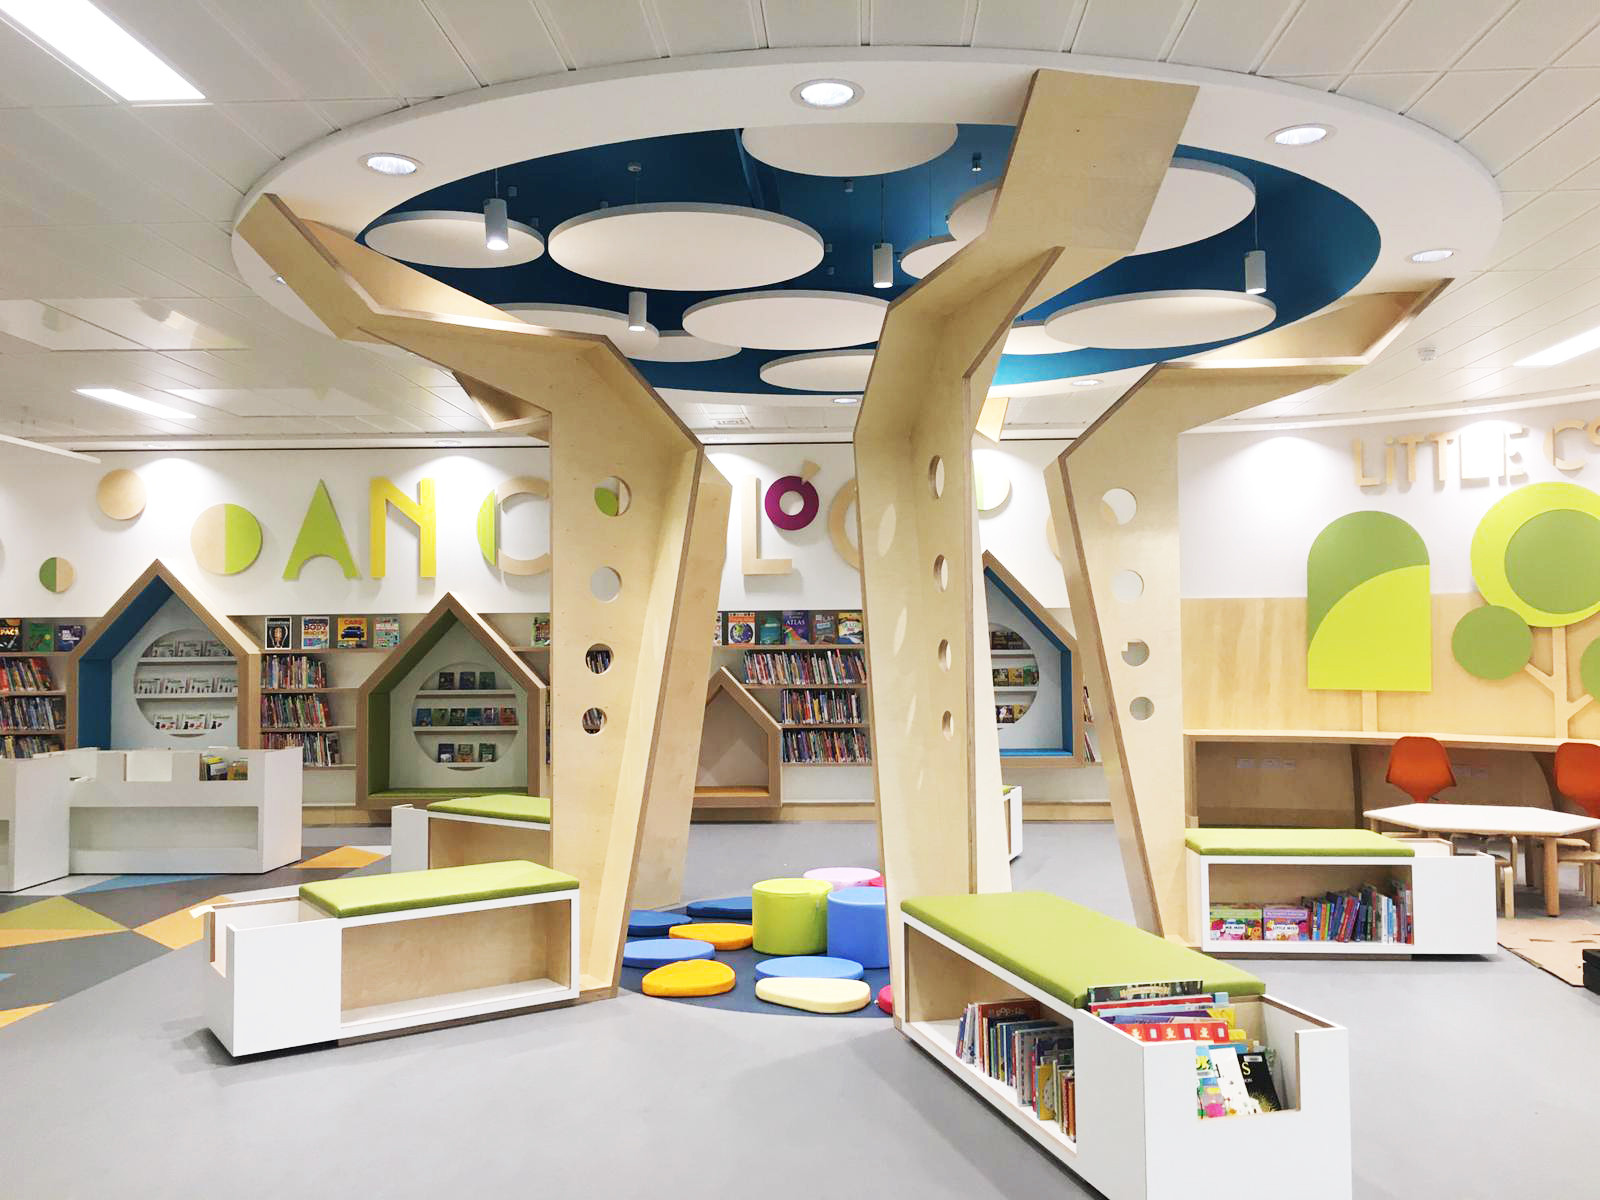 Work Rest Play Interiors: Latest Projects